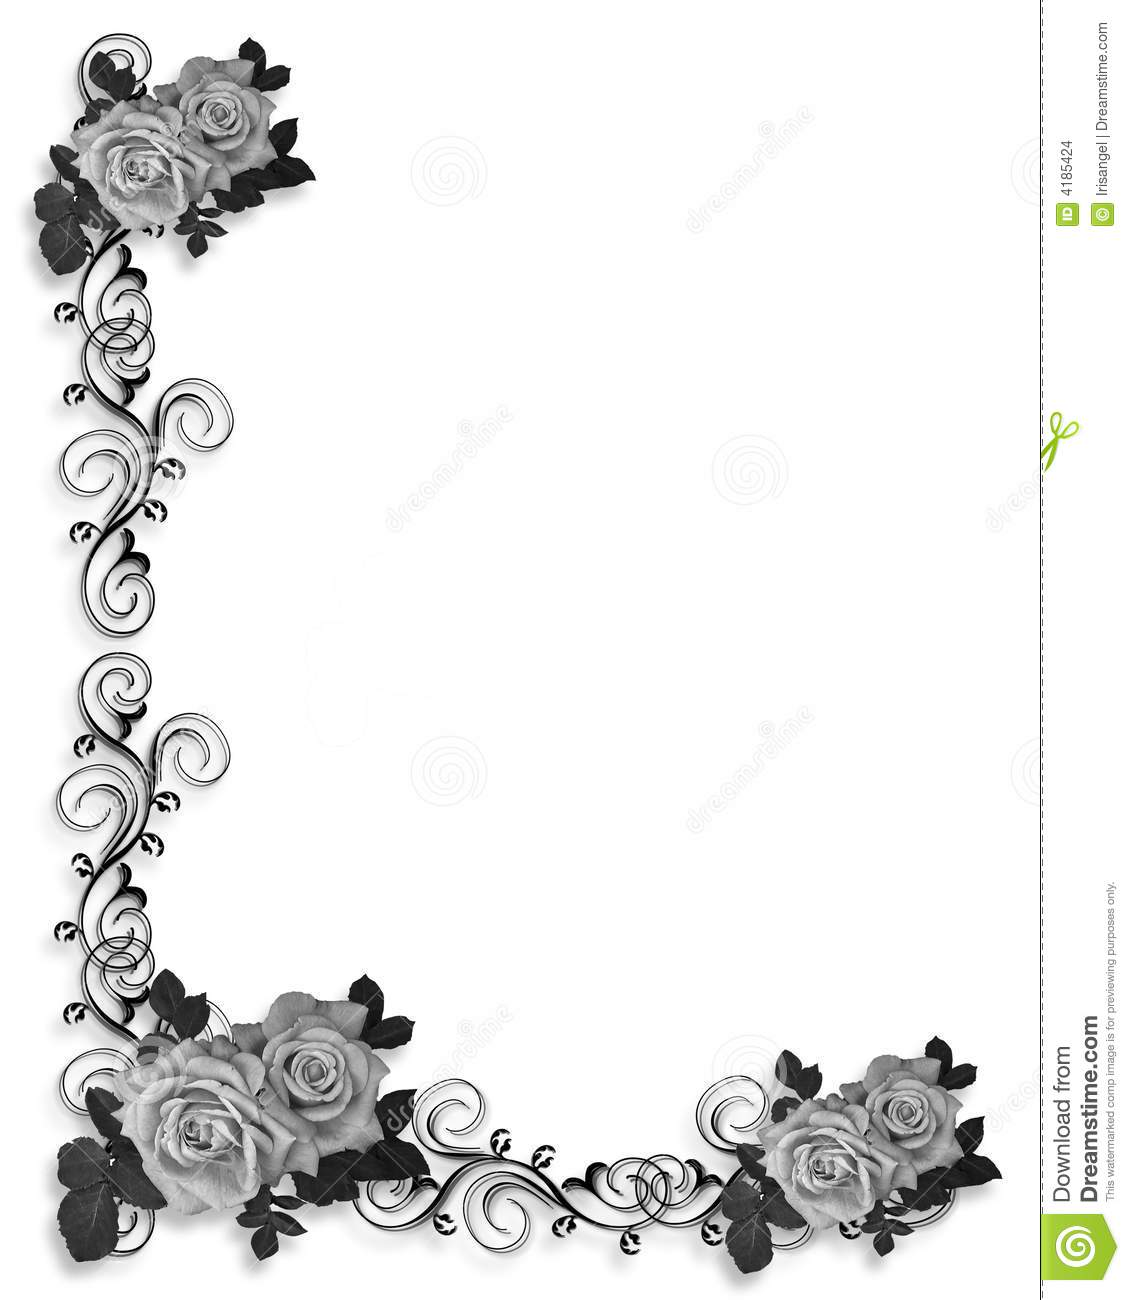 Roses Border In Black And White Stock Illustration - Illustration of